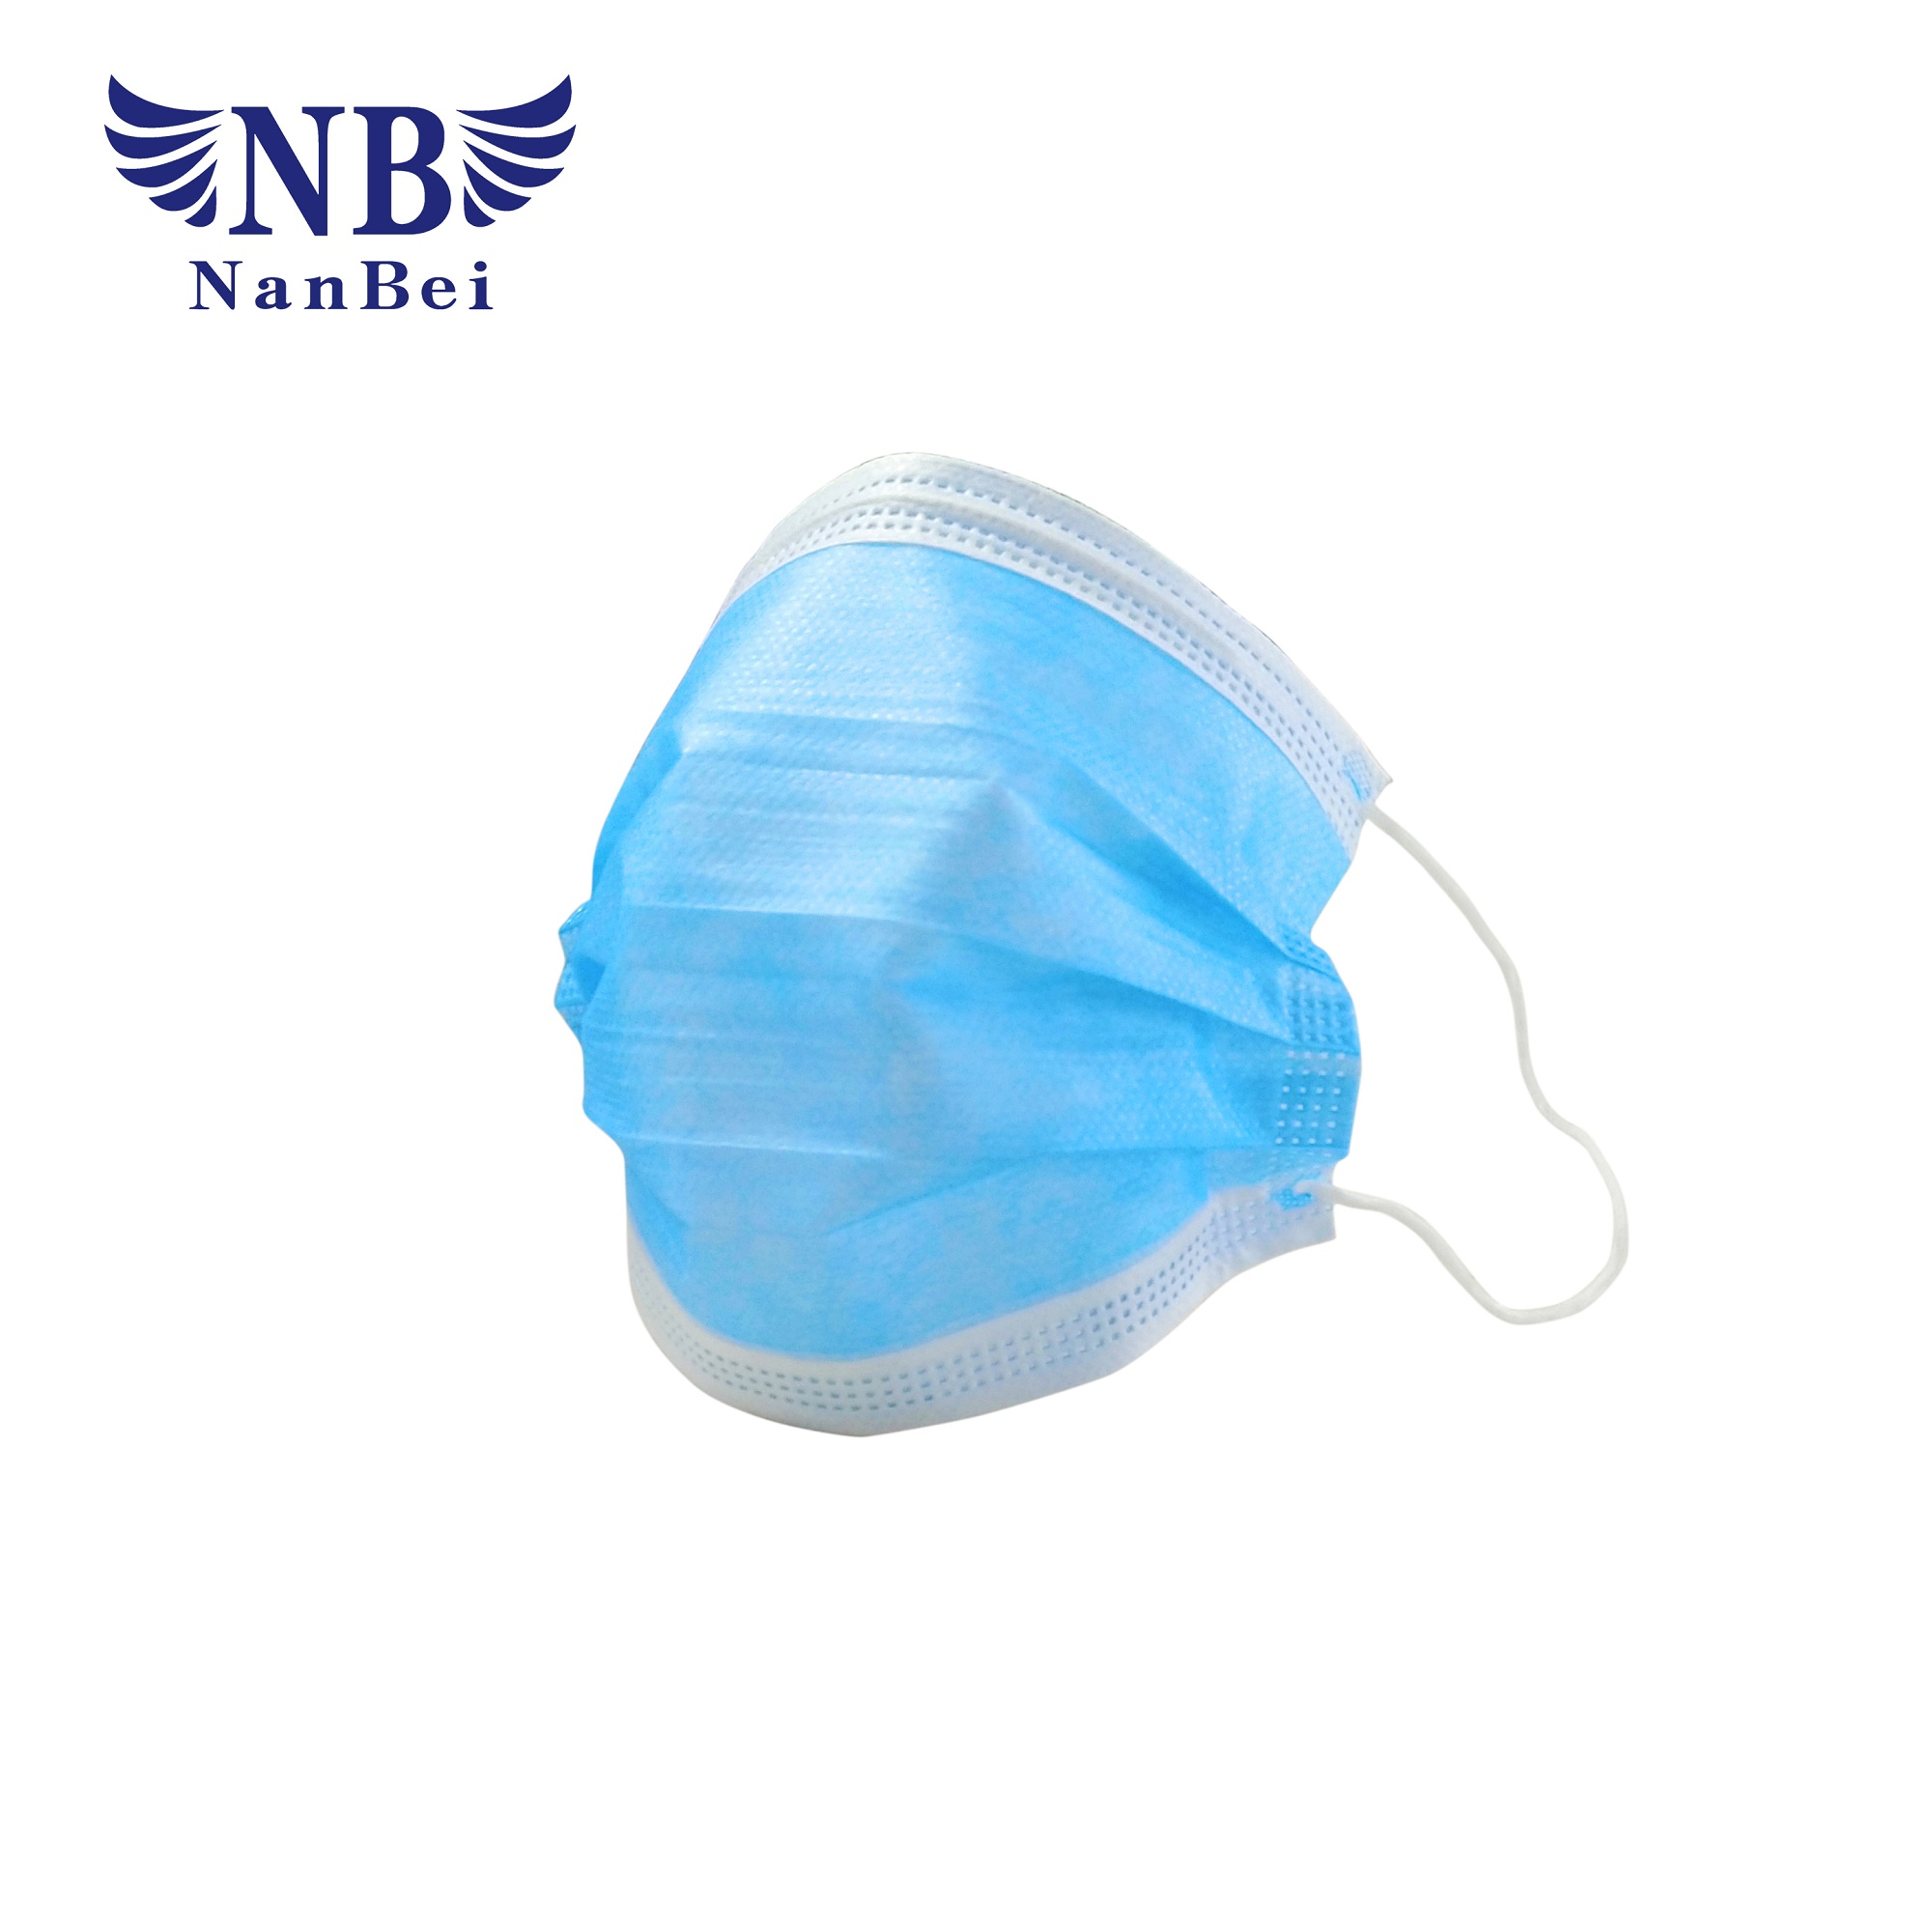 3ply Antivirus Disposable Medical Protective Surgical Masks